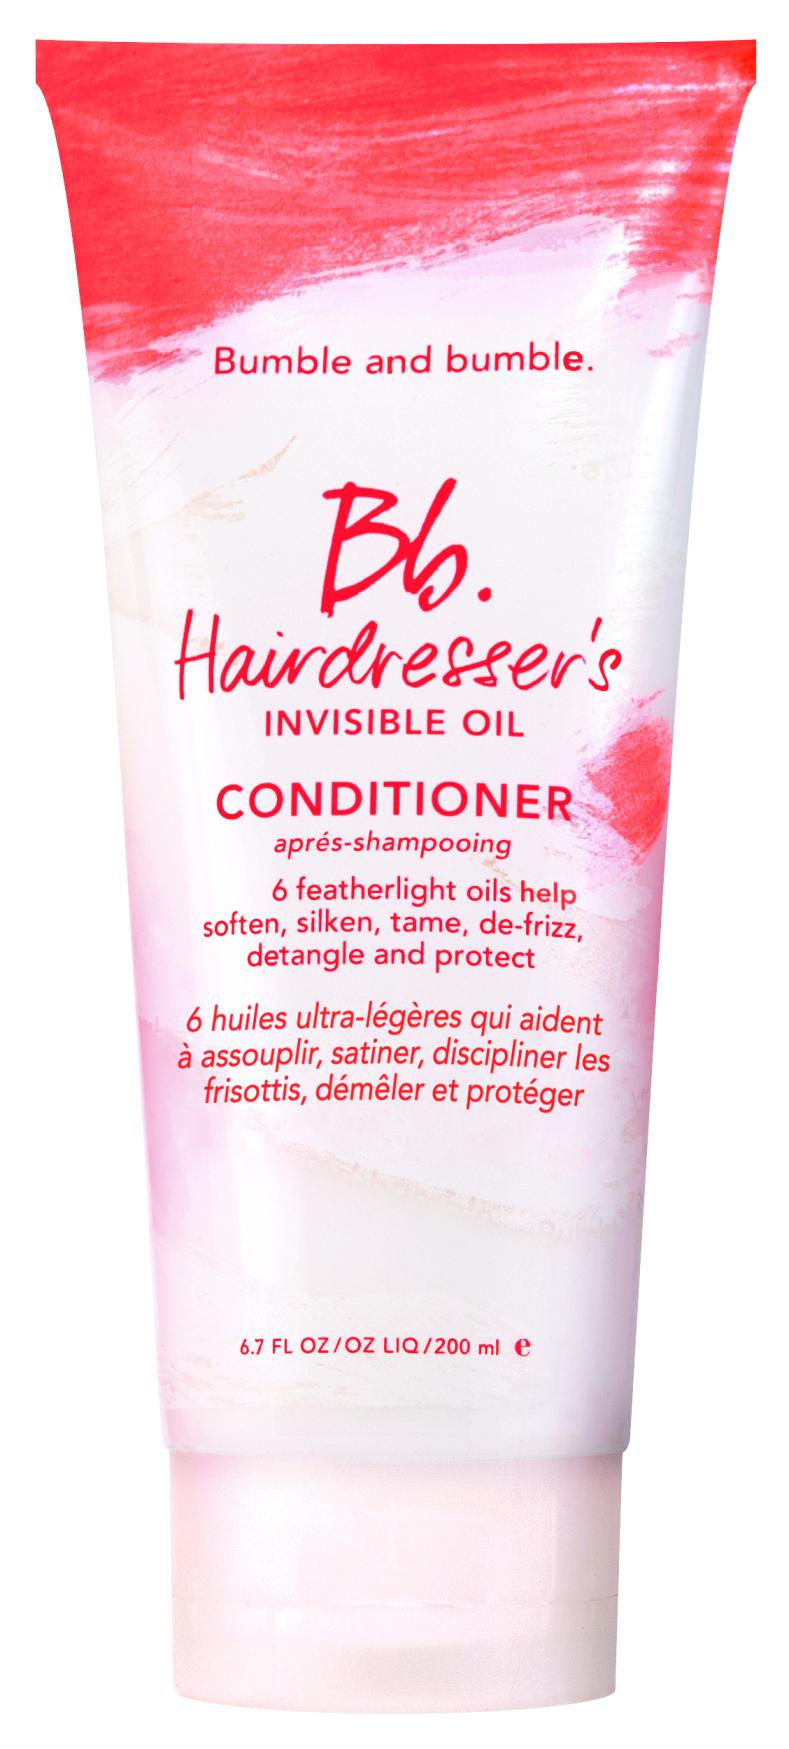 conditioner bumble